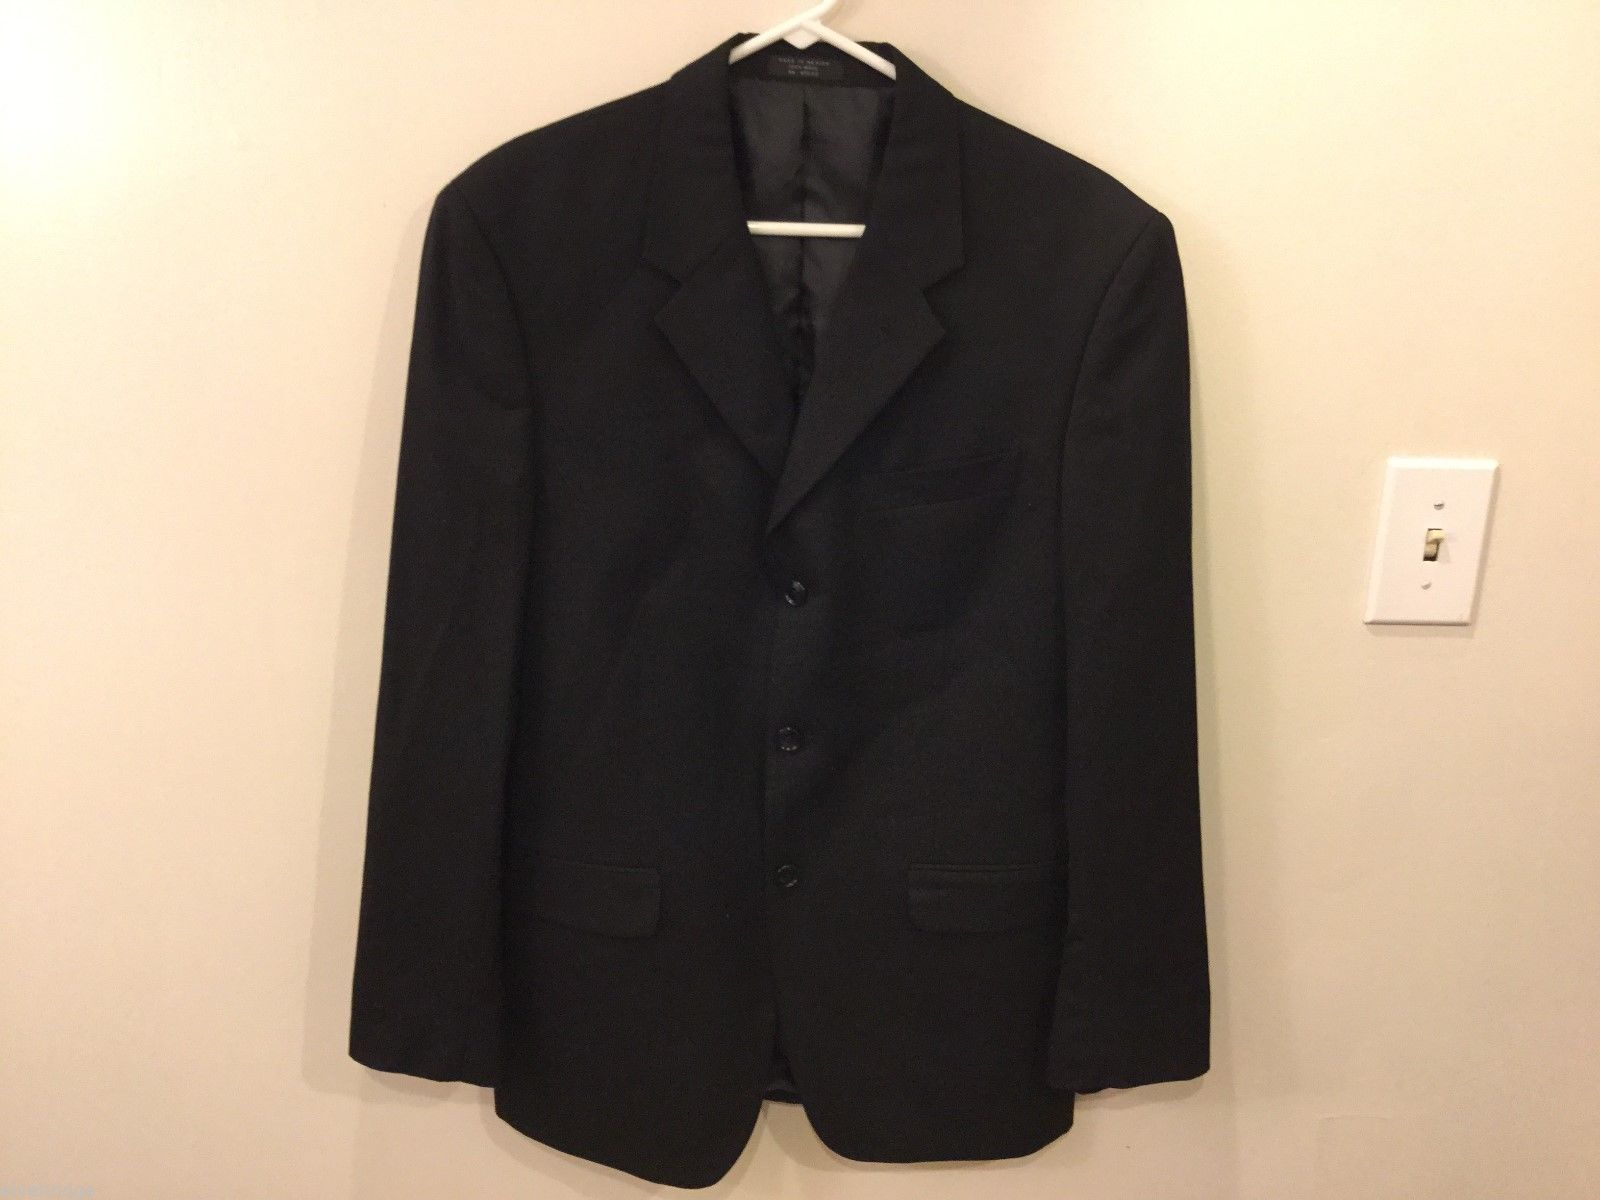 Mens Jones New York Black Suit Jacket, See Measurements